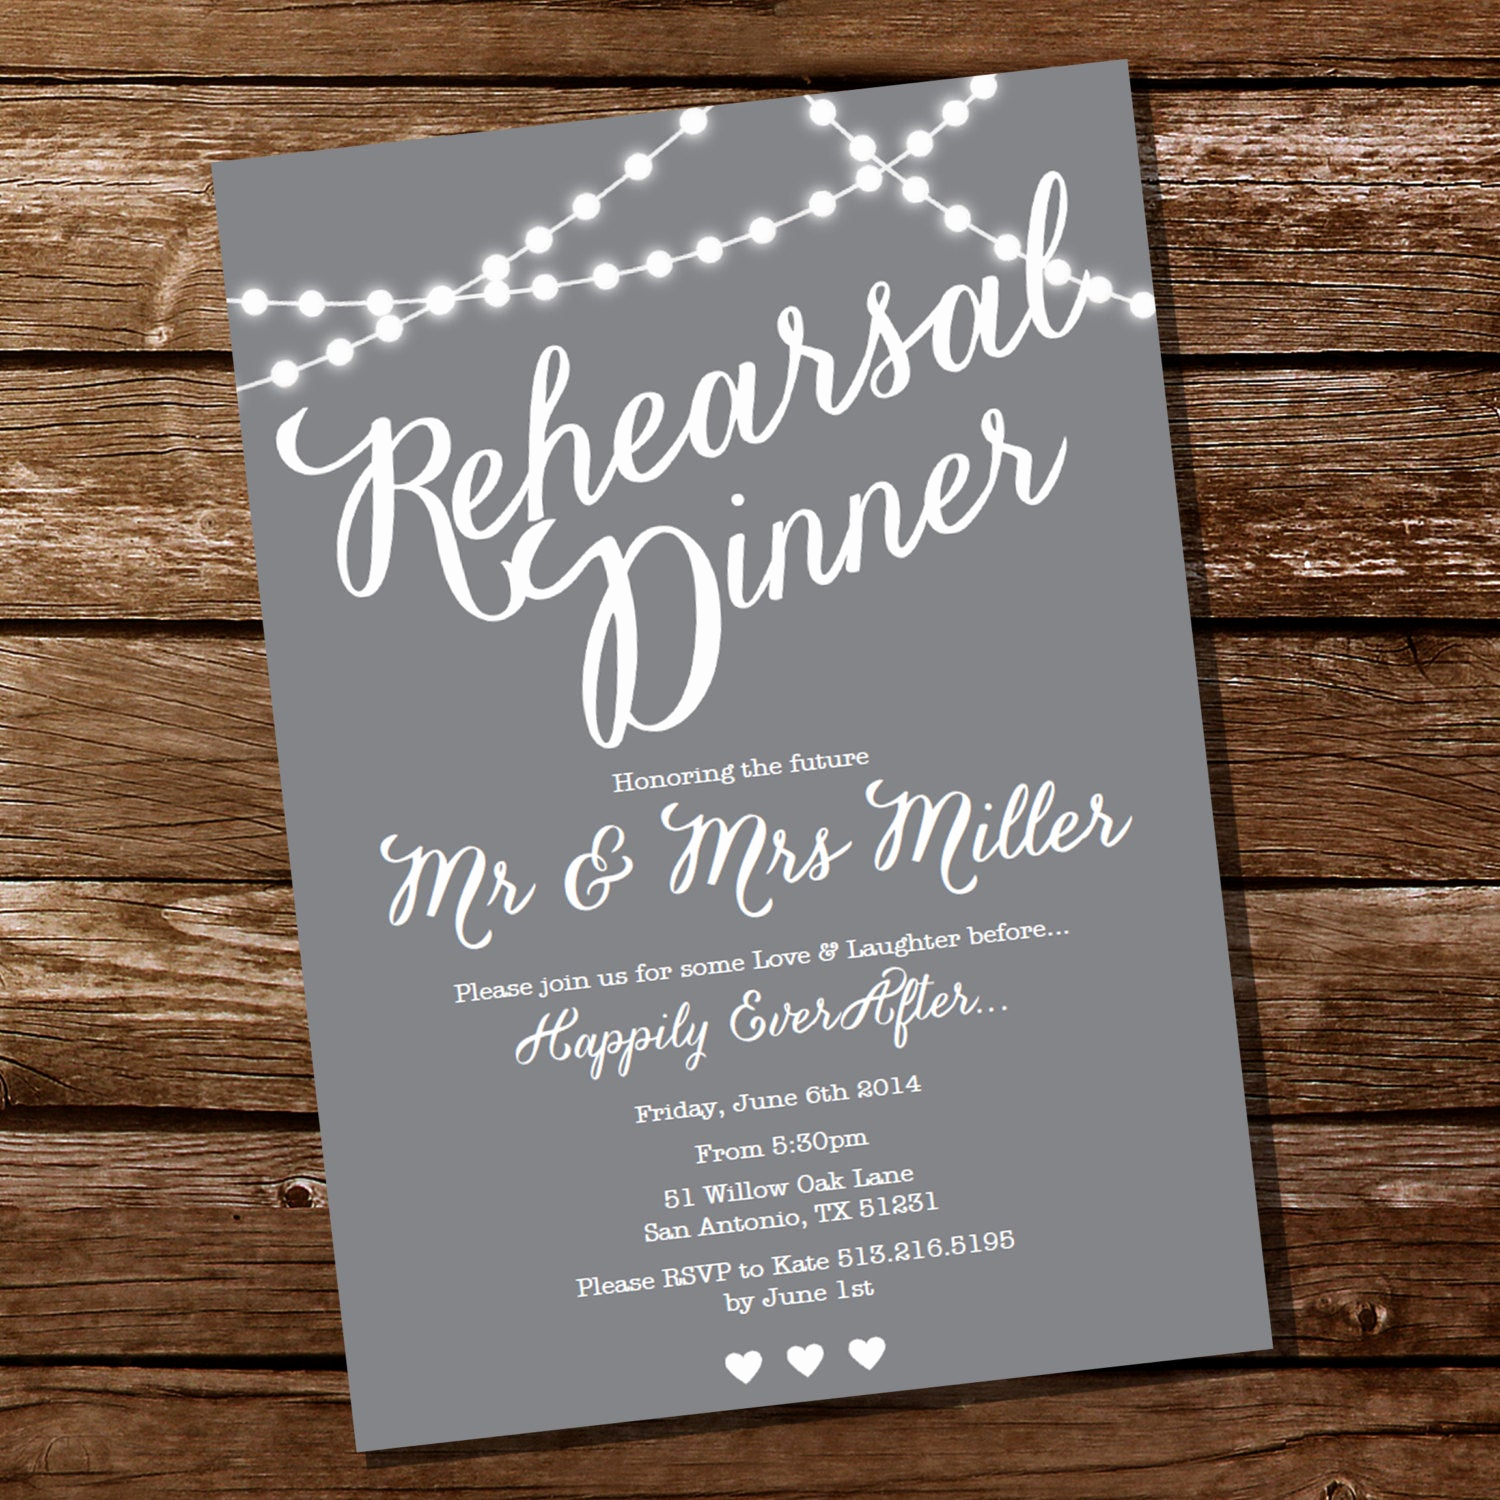 Rehearsal Dinner Invitation Wording Awesome Gray Rehearsal Dinner Invitation Instant Download and Edit